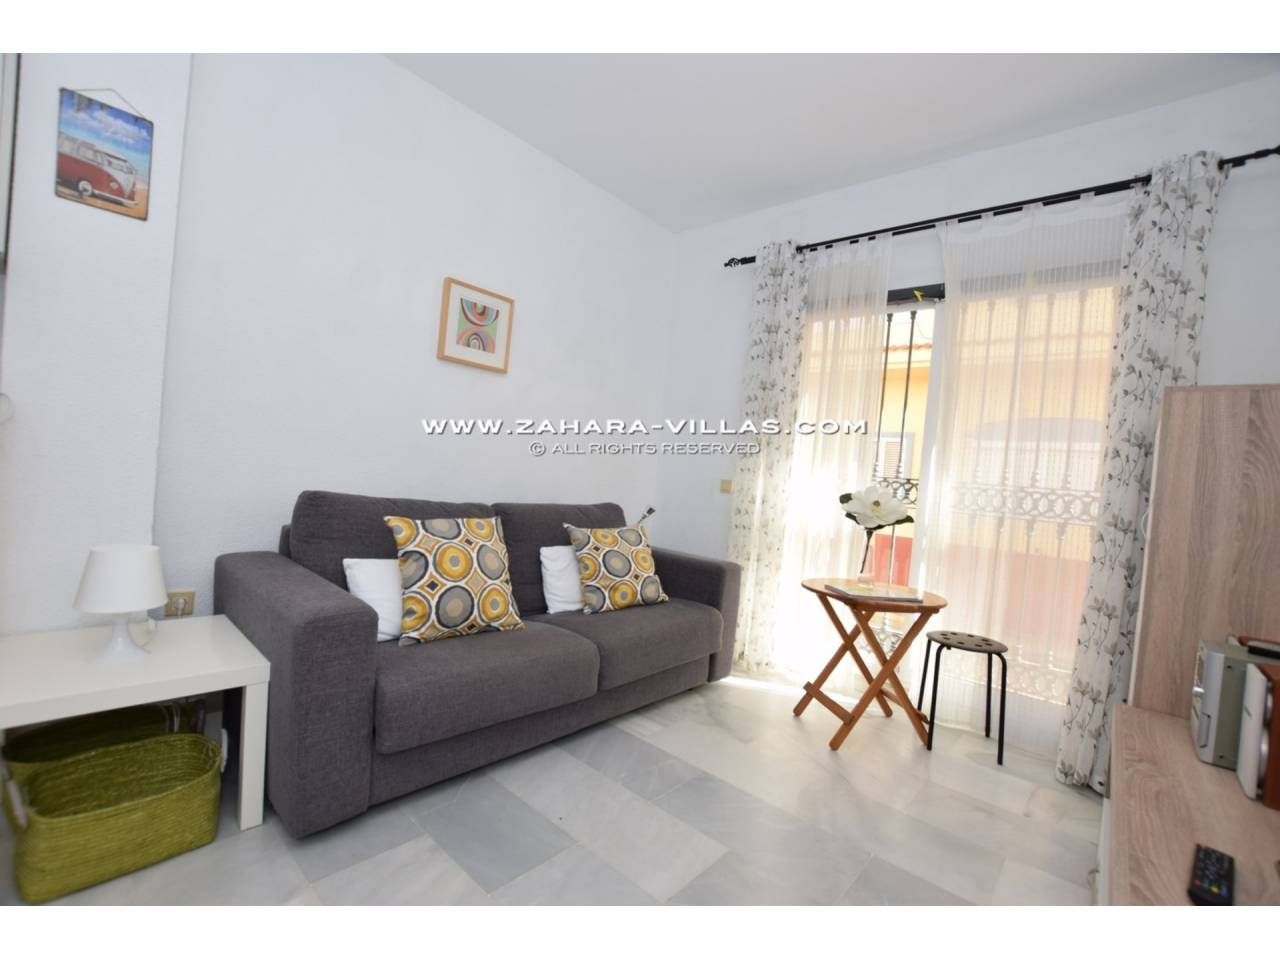 Imagen 9 de Apartment for sale in Zahara de los Atunes